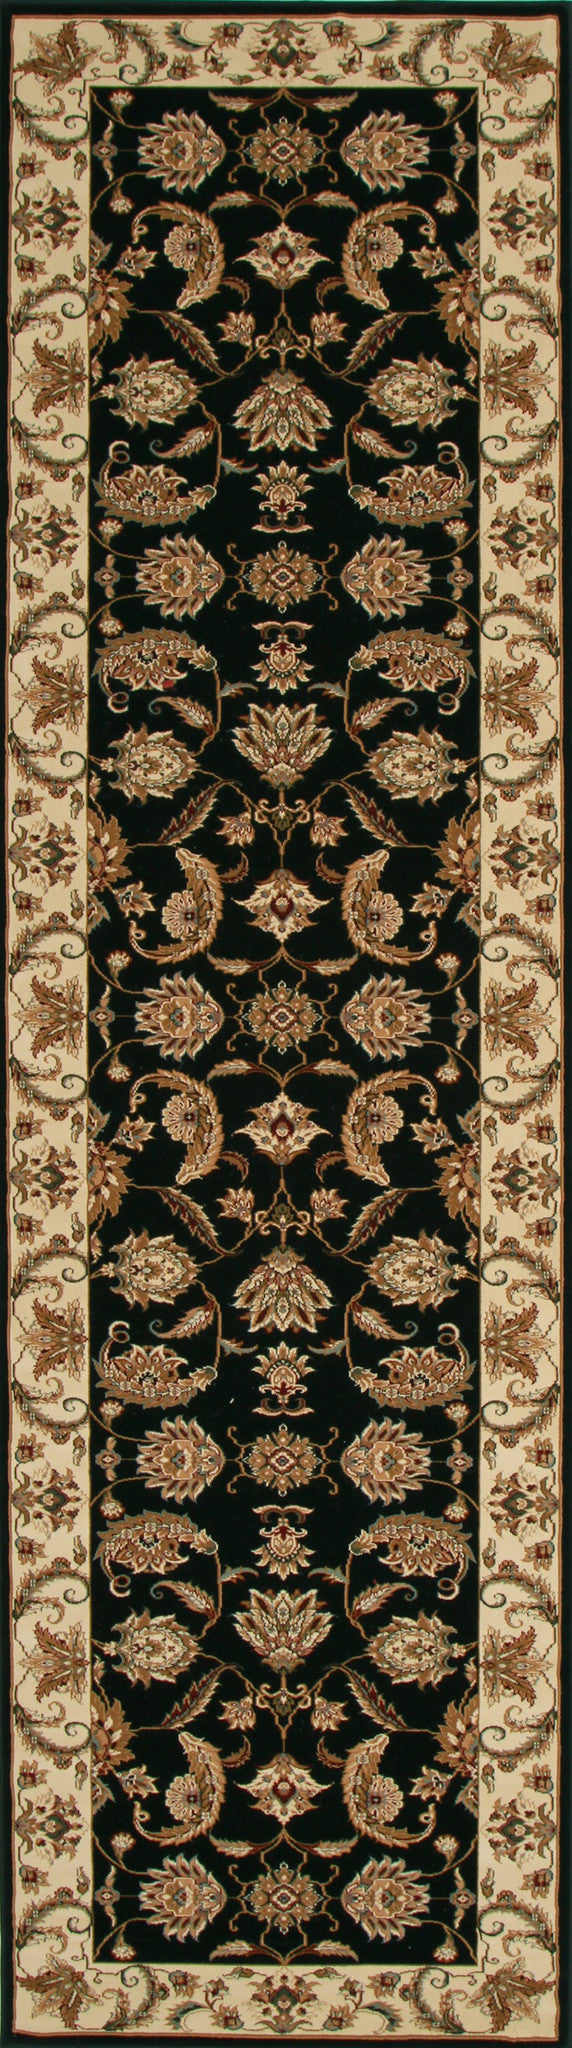 Stunning Formal Floral Design Rug Black